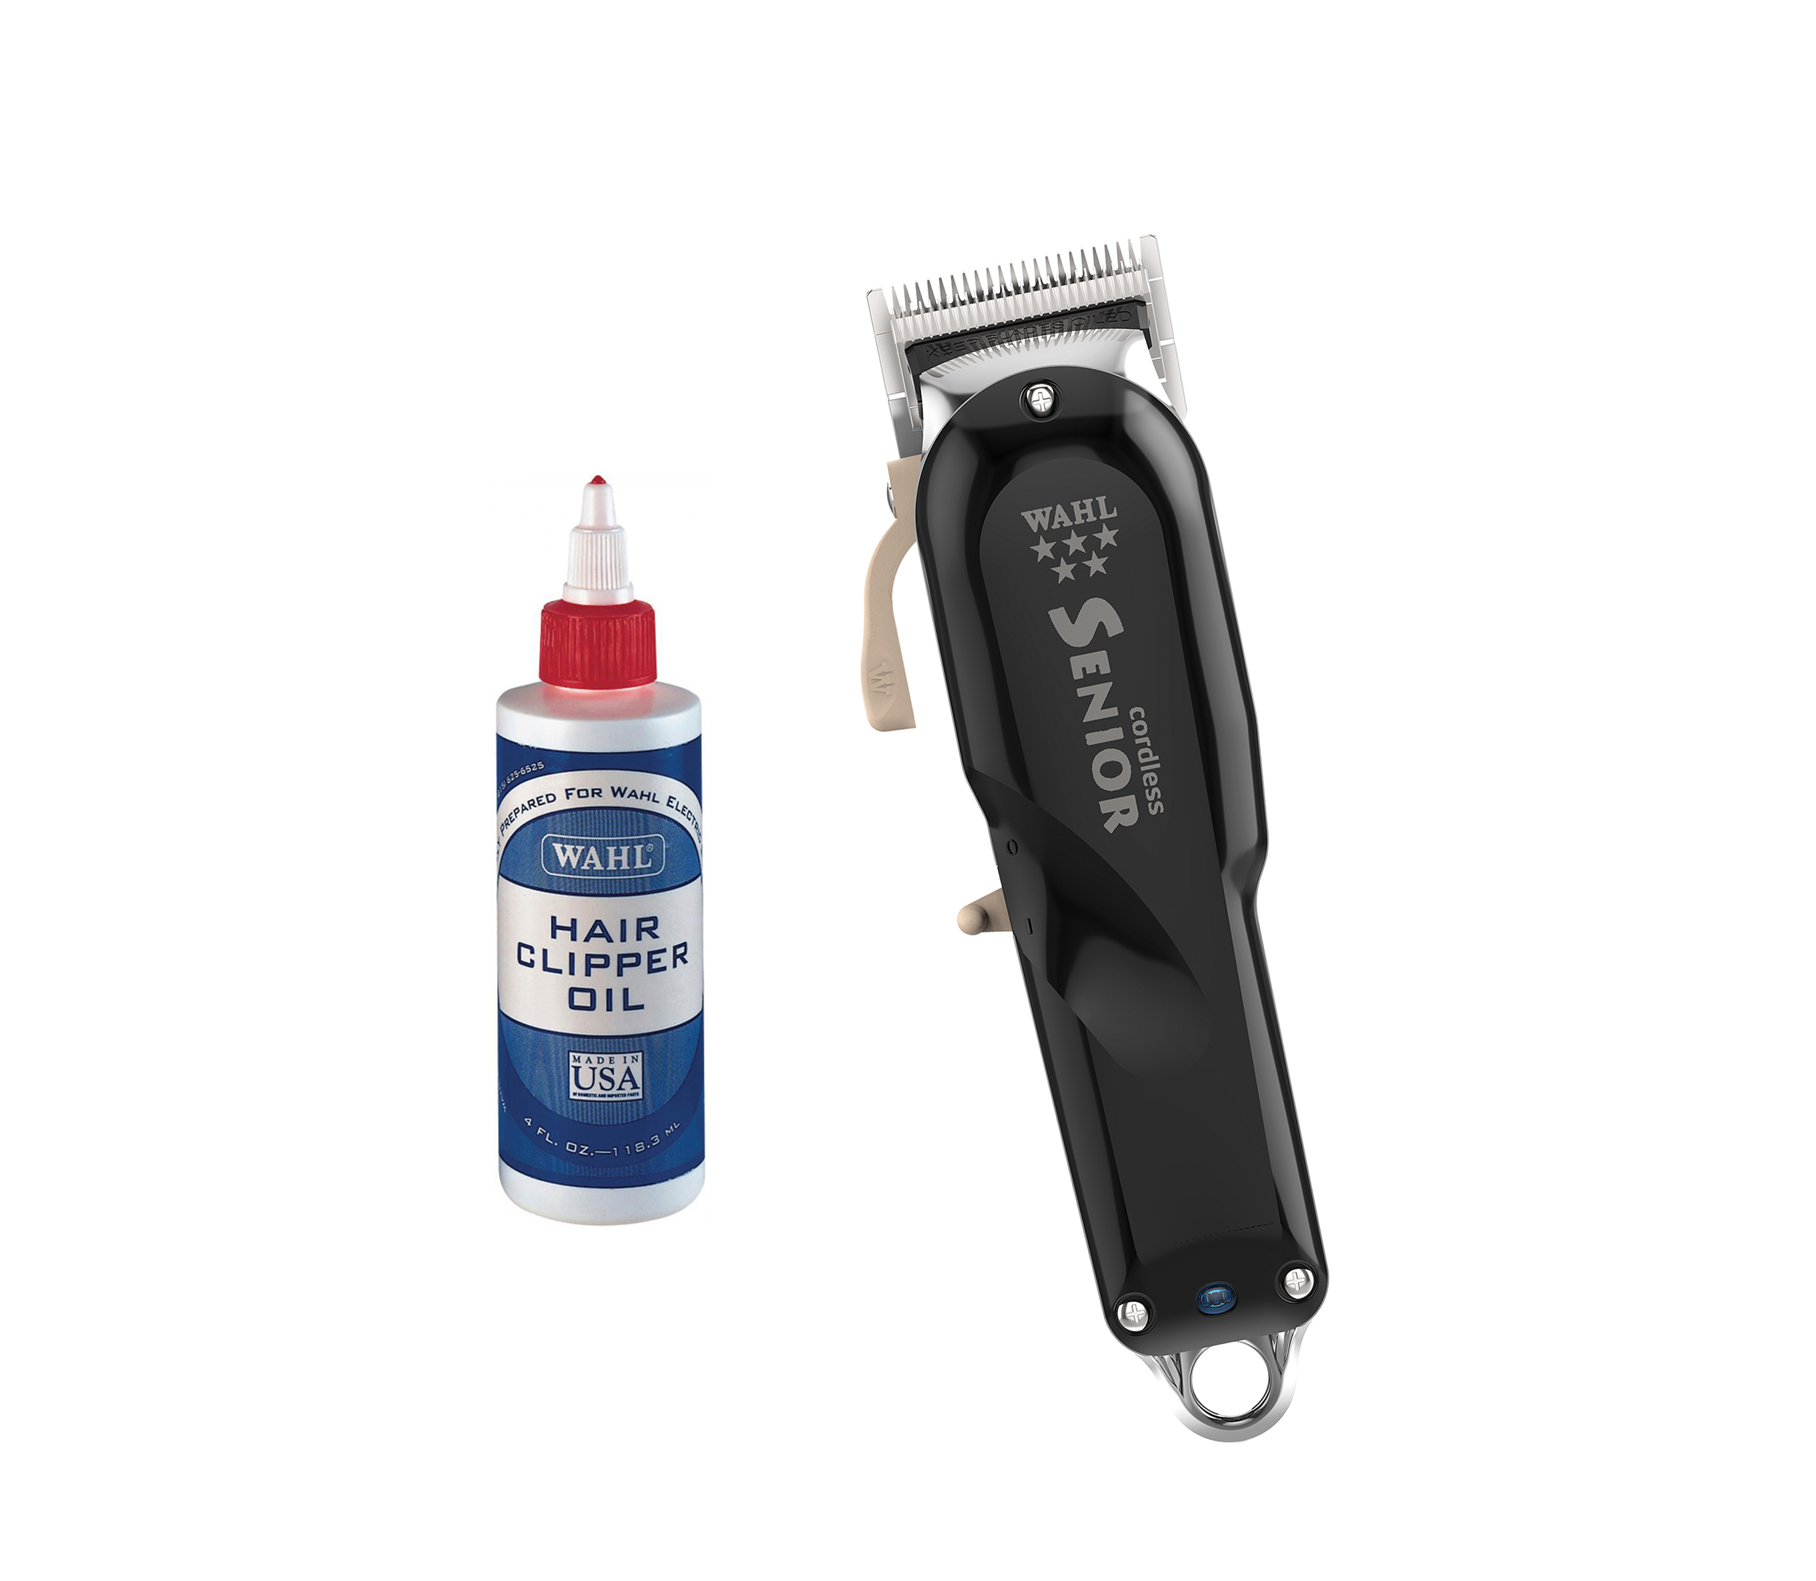 Wahl Cordless Senior Clipper With Wahl Clipper Oil